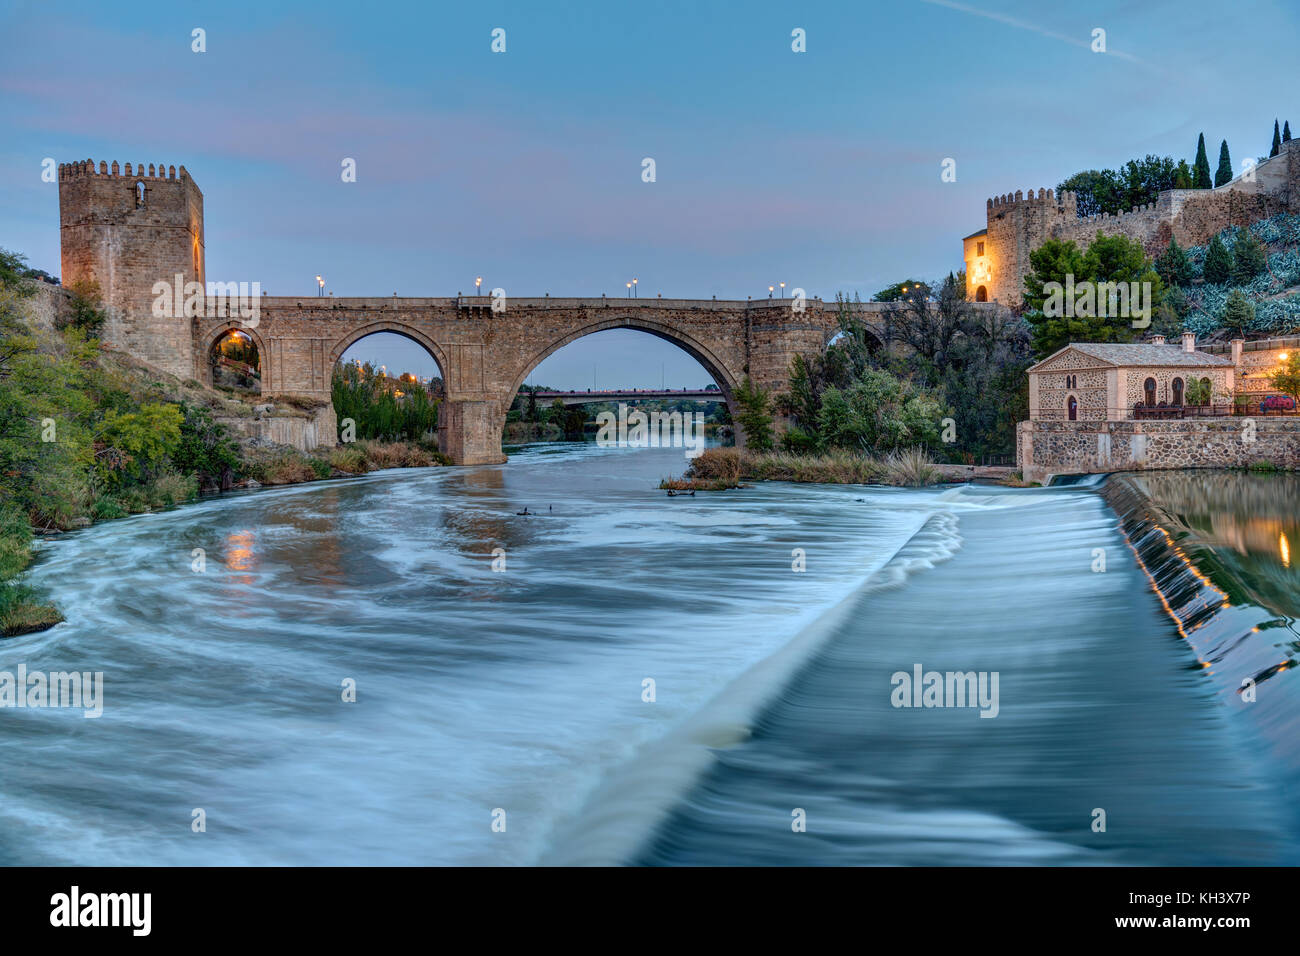 The Puente de San Martin in Toledo, Spain, at dawn - Stock Image